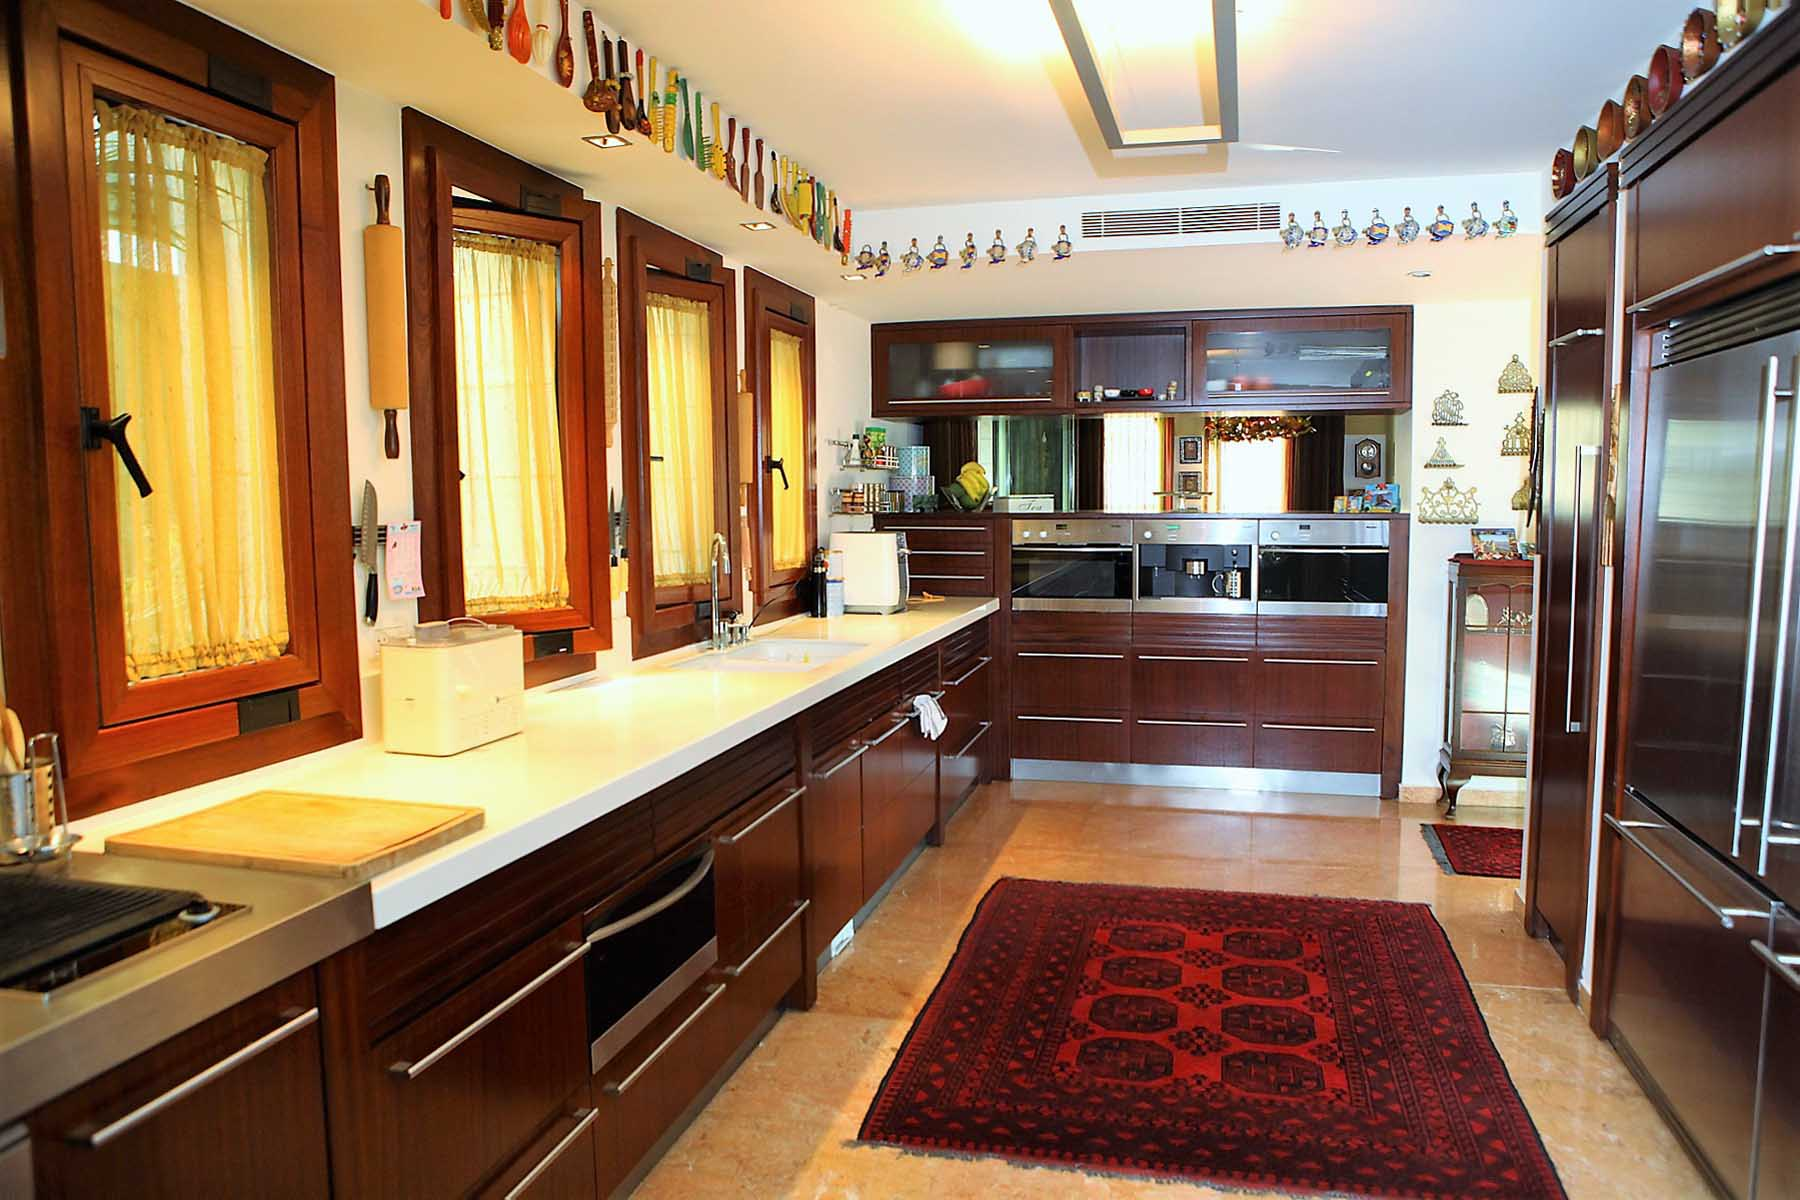 Additional photo for property listing at Incomparable luxury villa in Historic 'Ramat Denya' Neighborhood 耶路撒冷, 以色列 以色列